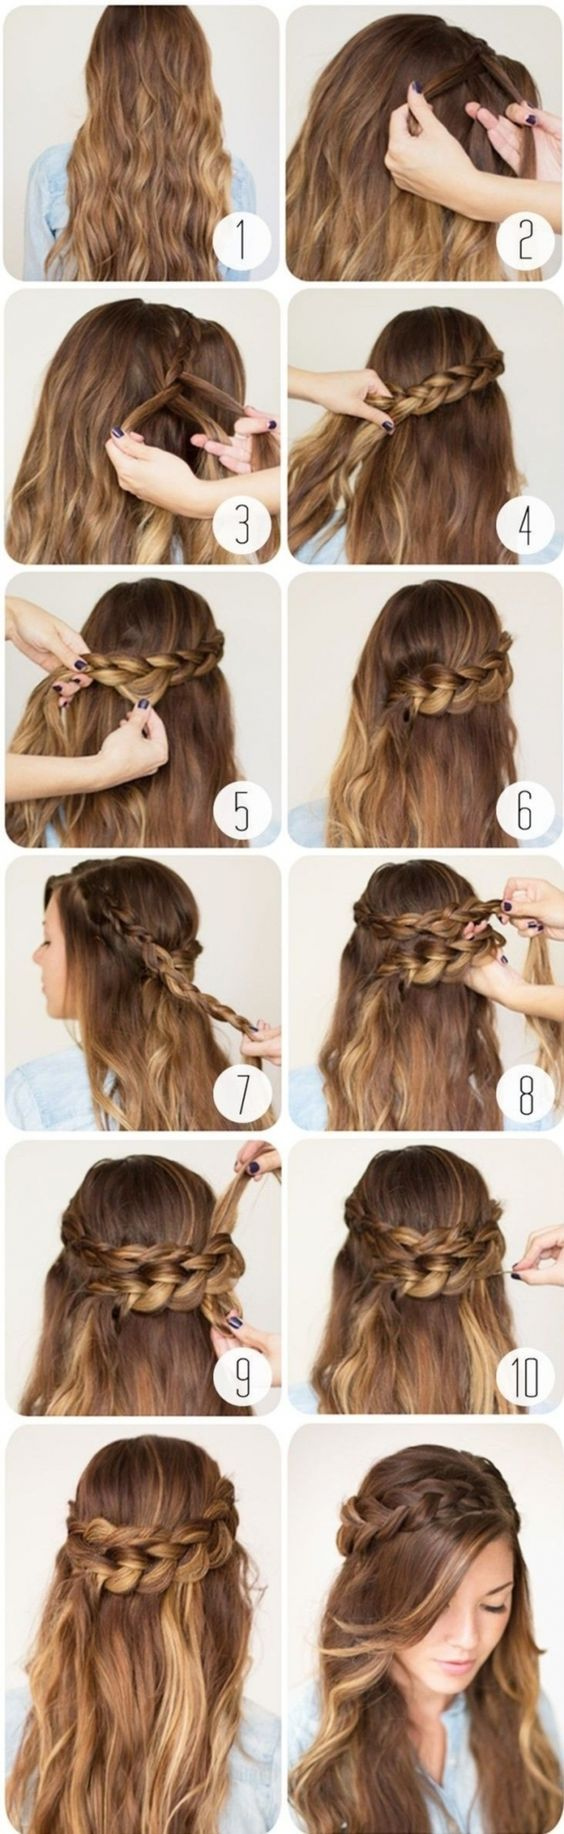 Graduation Hairstyles Outfit Tips Long Hair Styles Romantic Hairstyles Tutorial Hair Styles